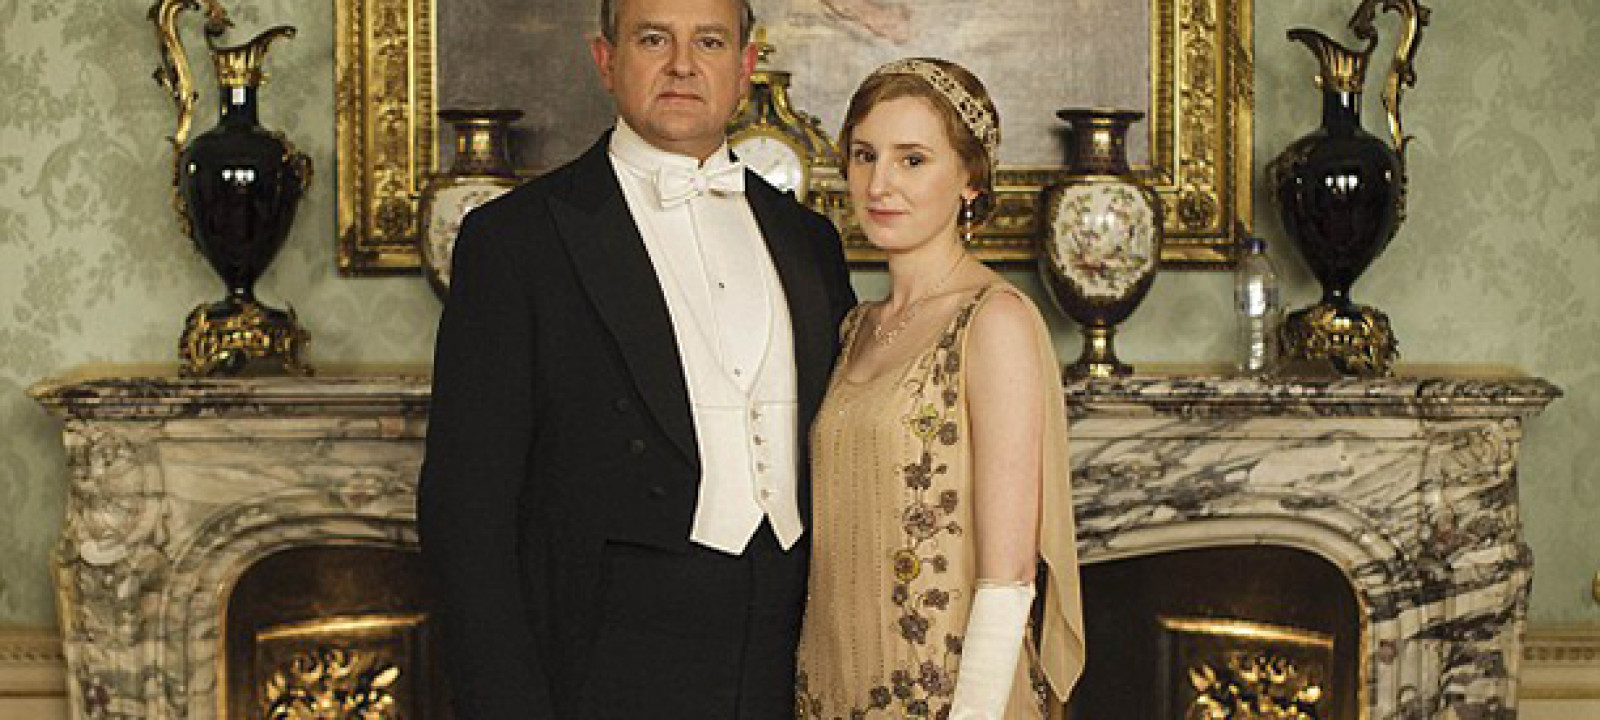 Downton Abbey, Water Bottle, Cropped